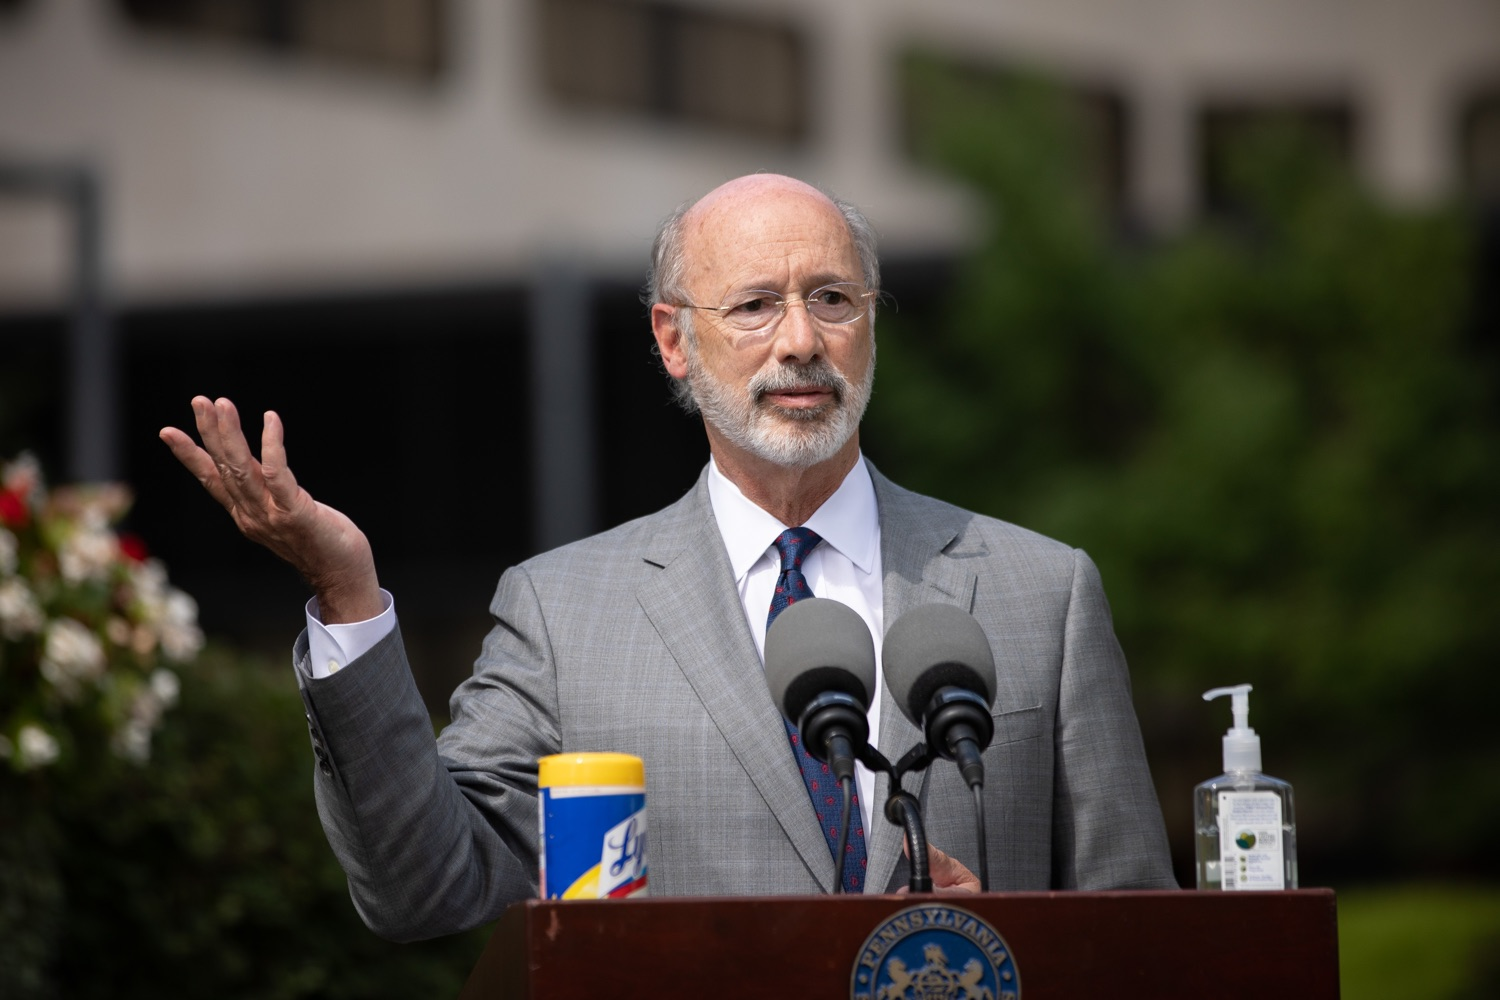 "<a href=""https://filesource.wostreaming.net/commonwealthofpa/photo/18093_gov-healthcare_workers_dz_19.jpg"" target=""_blank"">⇣ Download Photo<br></a>Pennsylvania Governor Tom Wolf answering questions from the press during his visit to Milton S. Hershey Medical Center. As the commonwealth continues its measured, phased reopening and COVID-19 case counts continue to decline, Governor Tom Wolf visited Penn State Milton S. Hershey Medical Center today to thank staff and learn more about how the facility is handling the pandemic and preparing for a possible resurgence in the fall.  Harrisburg, PA  June 24, 2020"